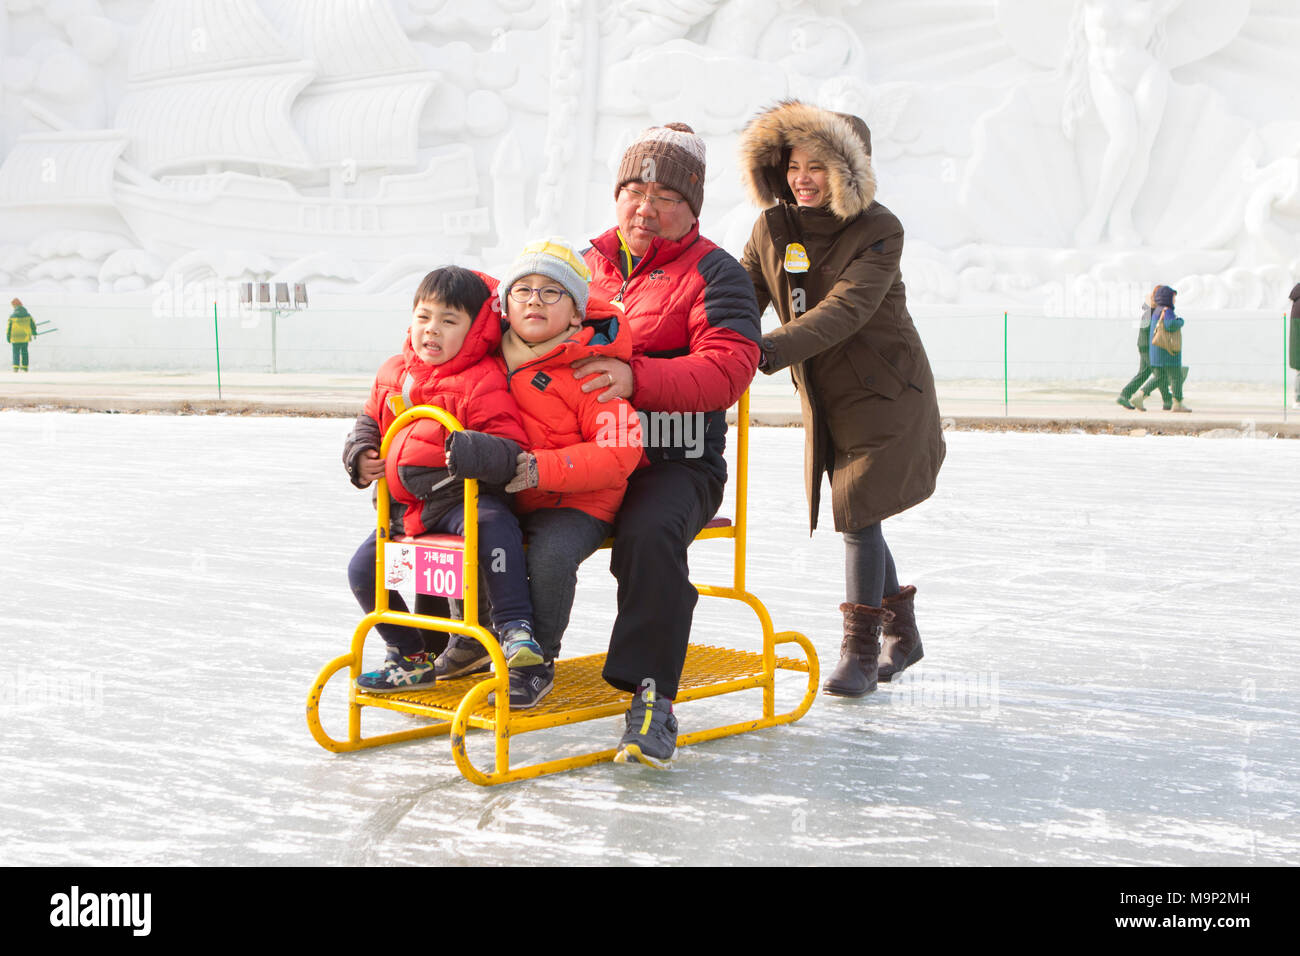 An Asian family is having fun on a group sled at a frozen river.  The Hwacheon Sancheoneo Ice Festival is a tradition for Korean people. Every year in January crowds gather at the frozen river to celebrate the cold and snow of winter. Main attraction is ice fishing. Young and old wait patiently over a small hole in the ice for a trout to bite. In tents they can let the fish grilled after which they are eaten. Among other activities are sledding and ice skating.  The nearby Pyeongchang region will host the Winter Olympics in February 2018. - Stock Image